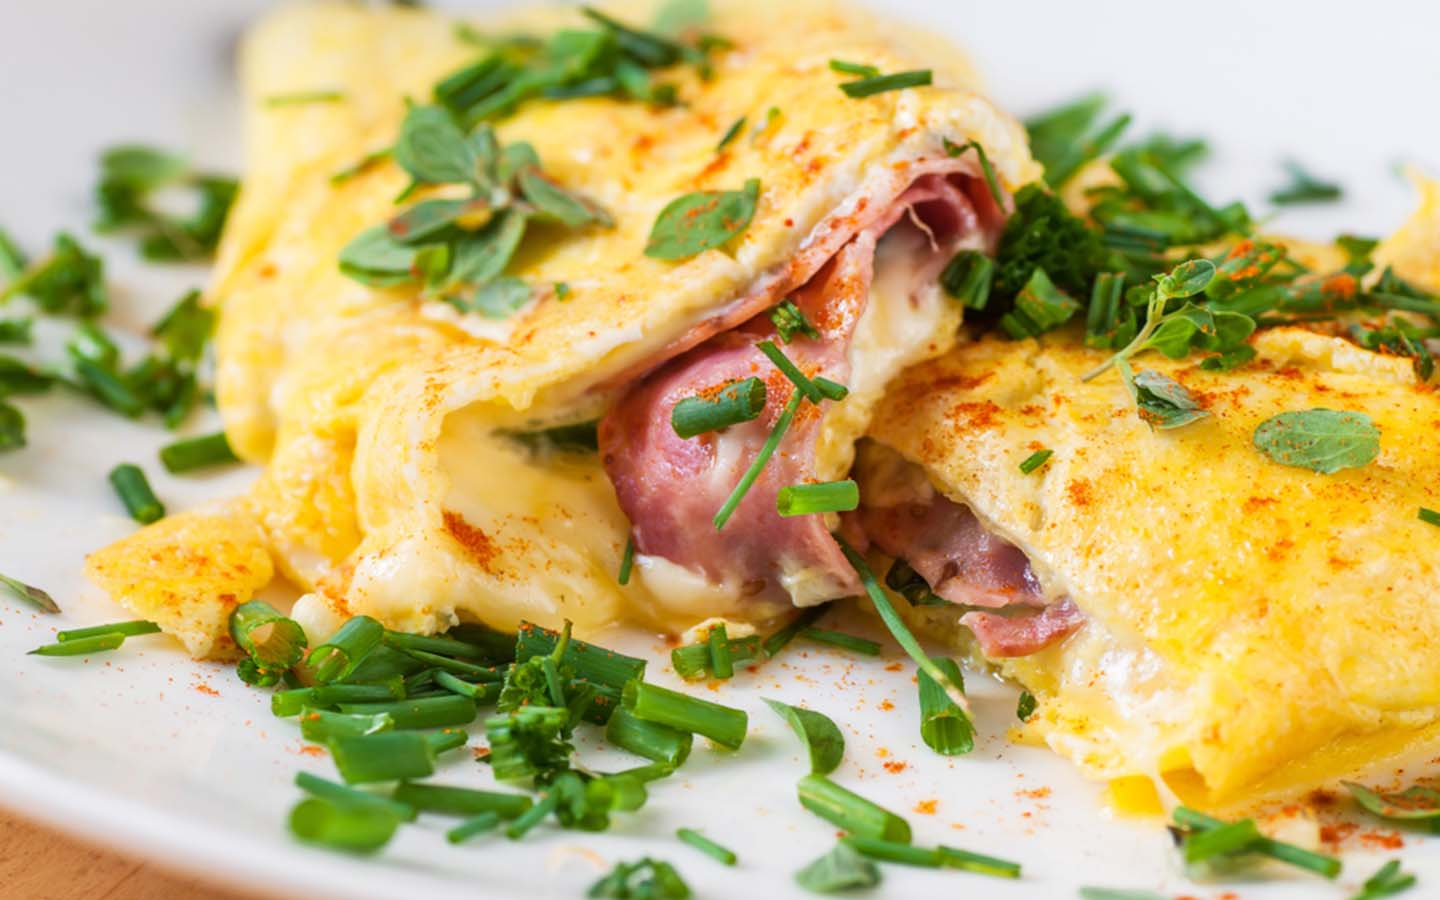 Cheese Omelette served with chives